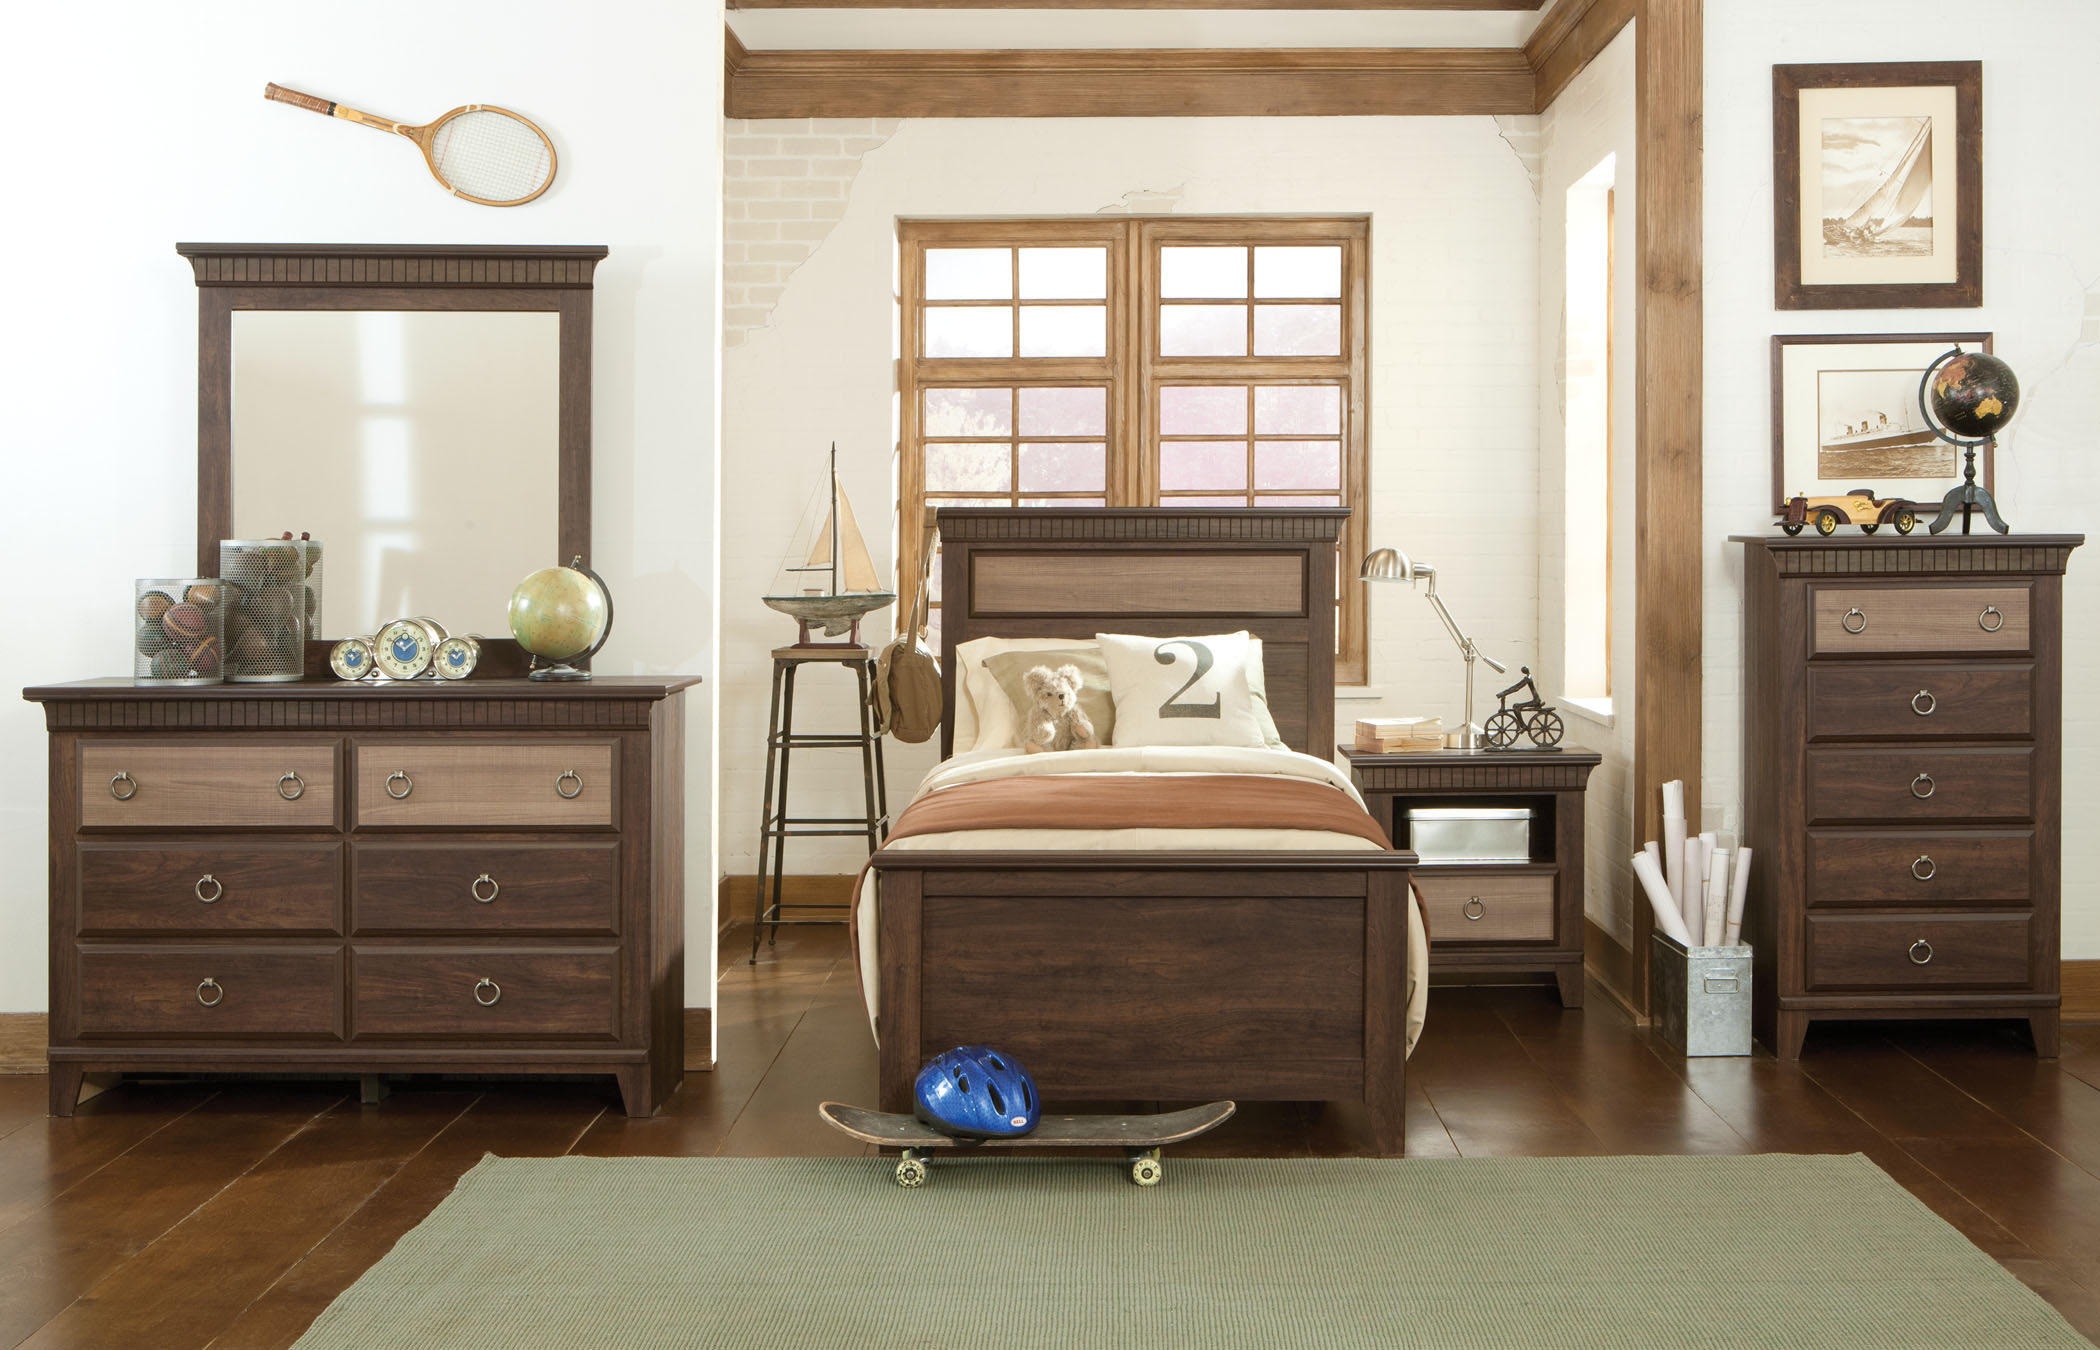 Standard Furniture Youth Bedroom Weatherly 68150 Home Furniture